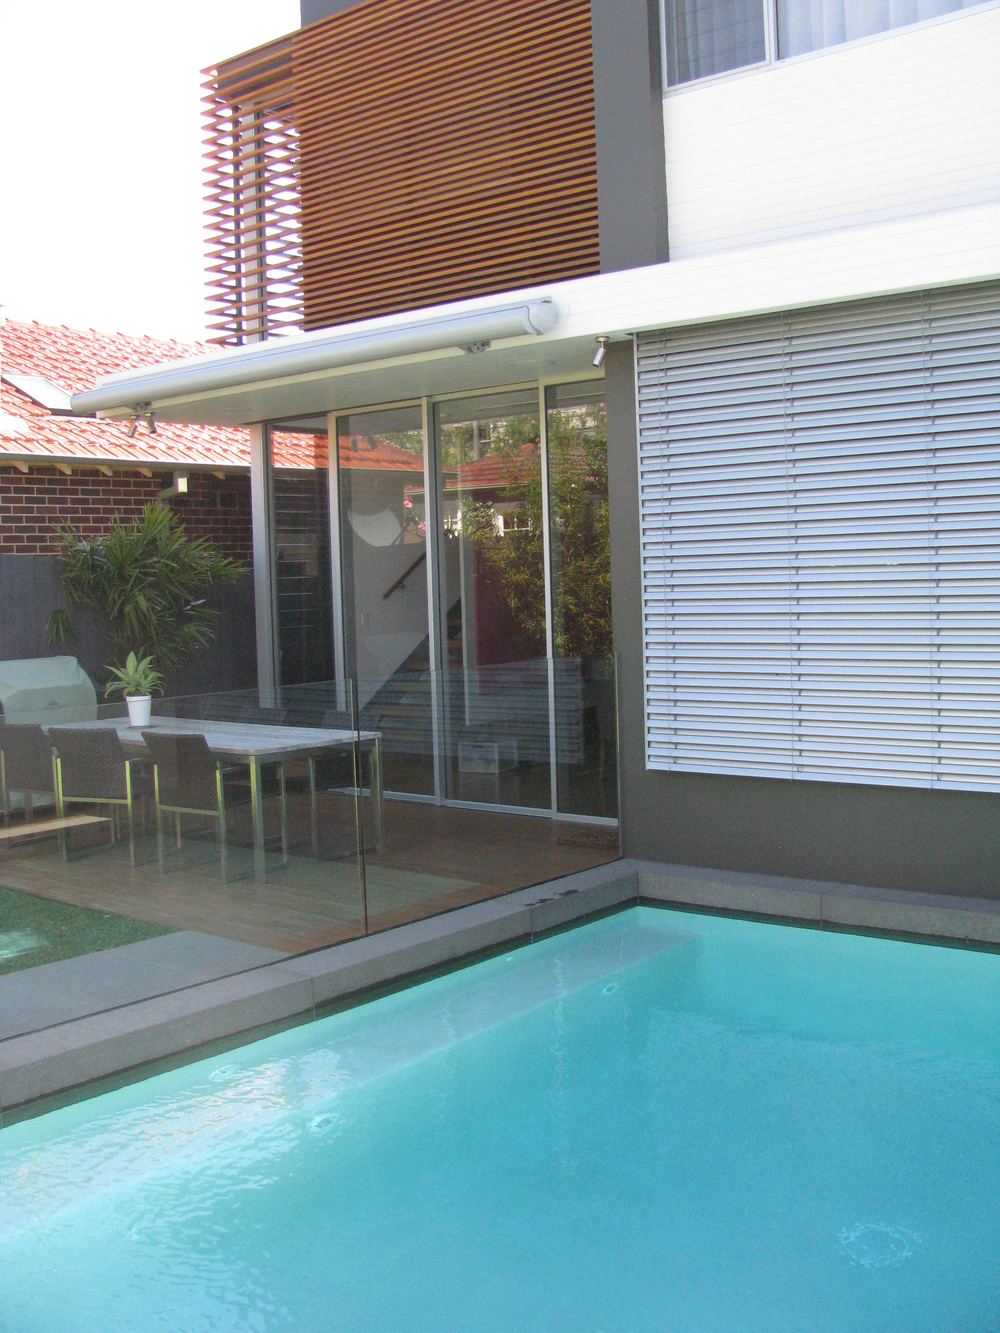 Bellambi flamed pool randwick2.jpg